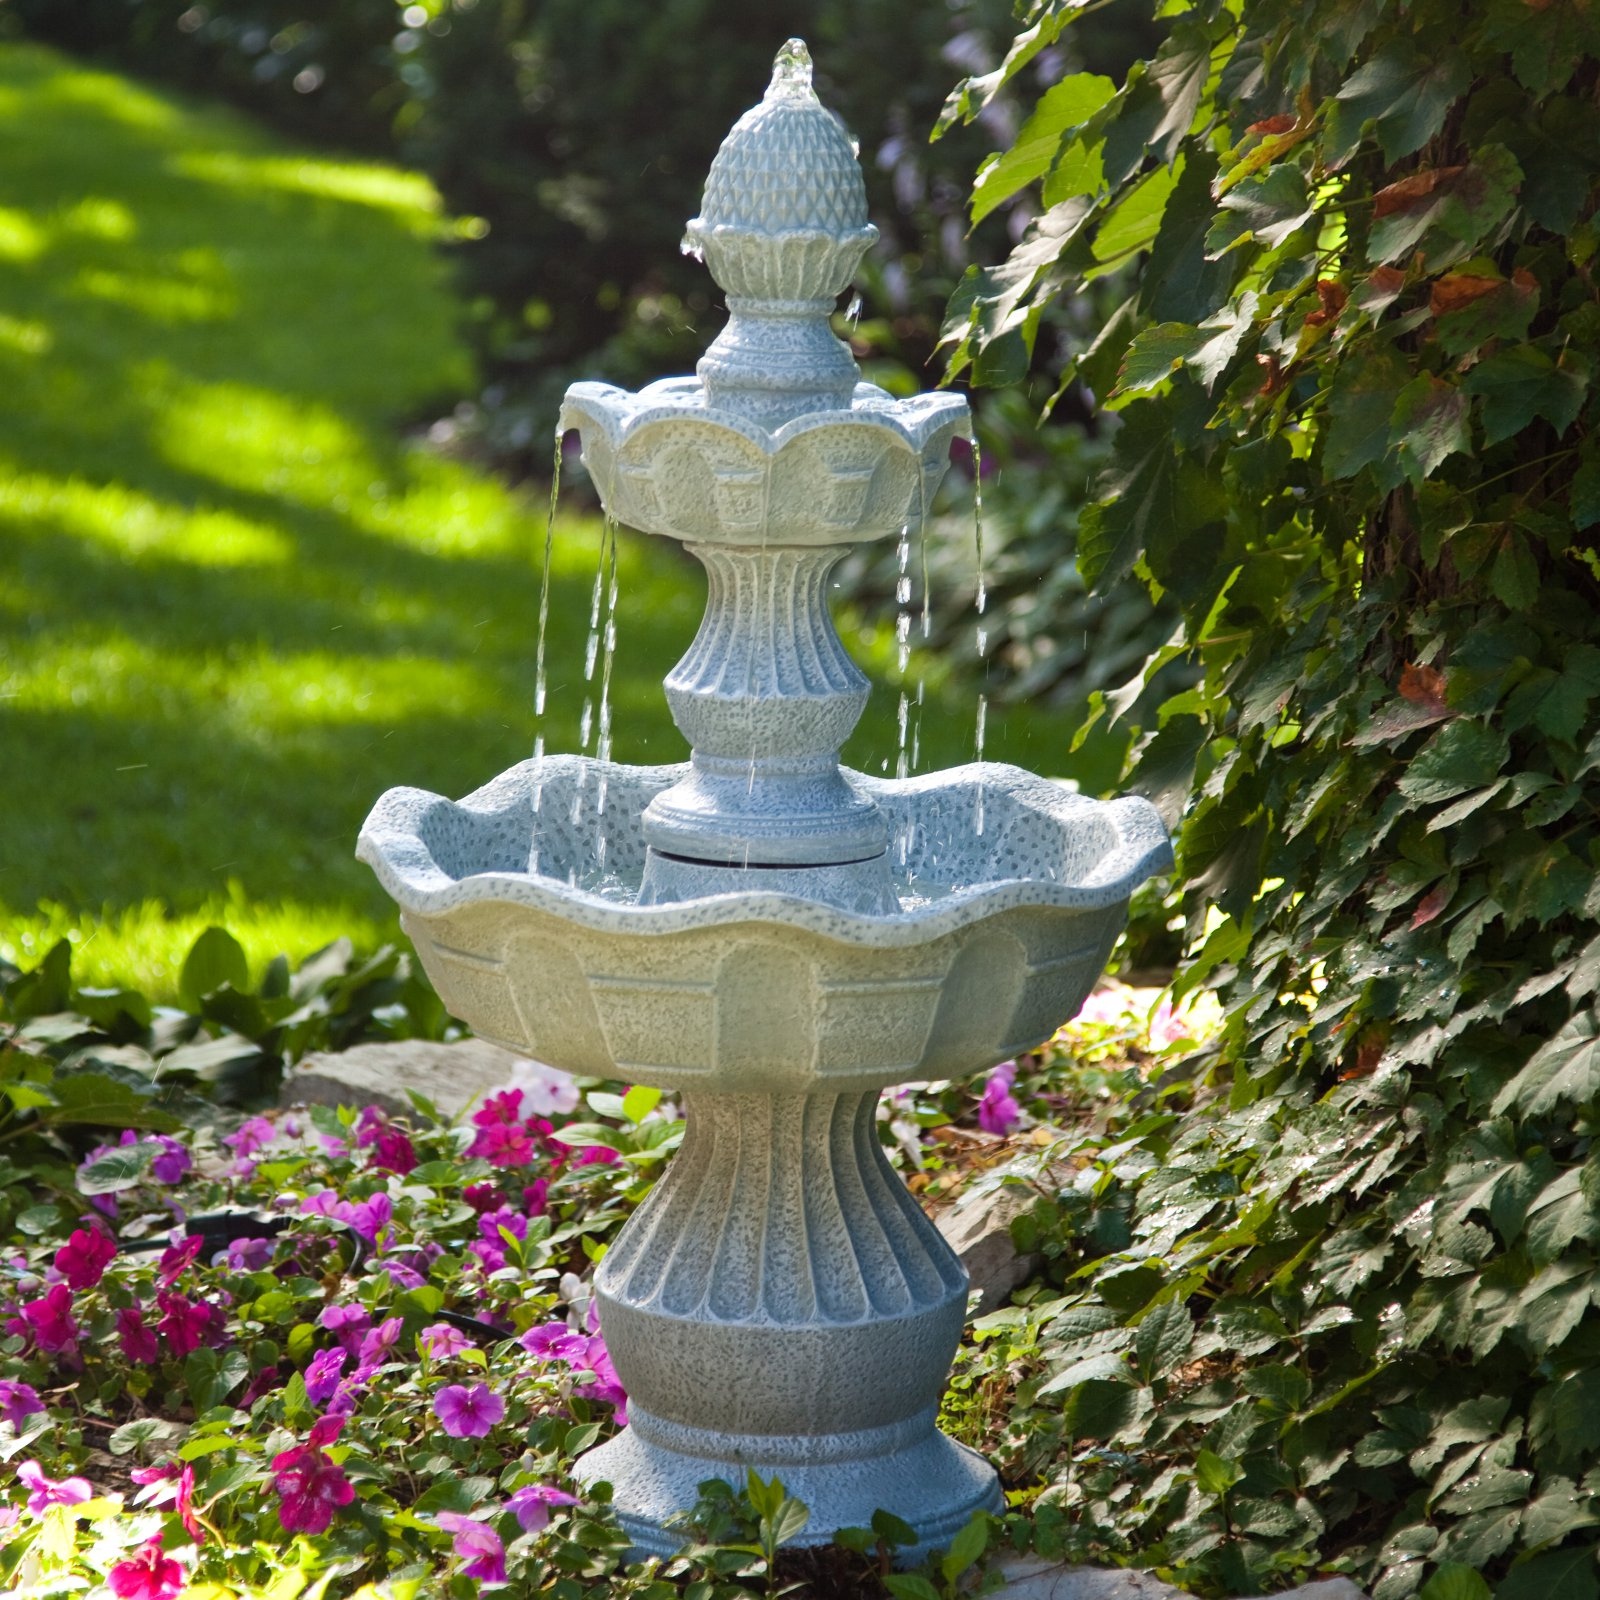 Welcome Garden Pineapple Tiered Outdoor Fountain by LB International Inc